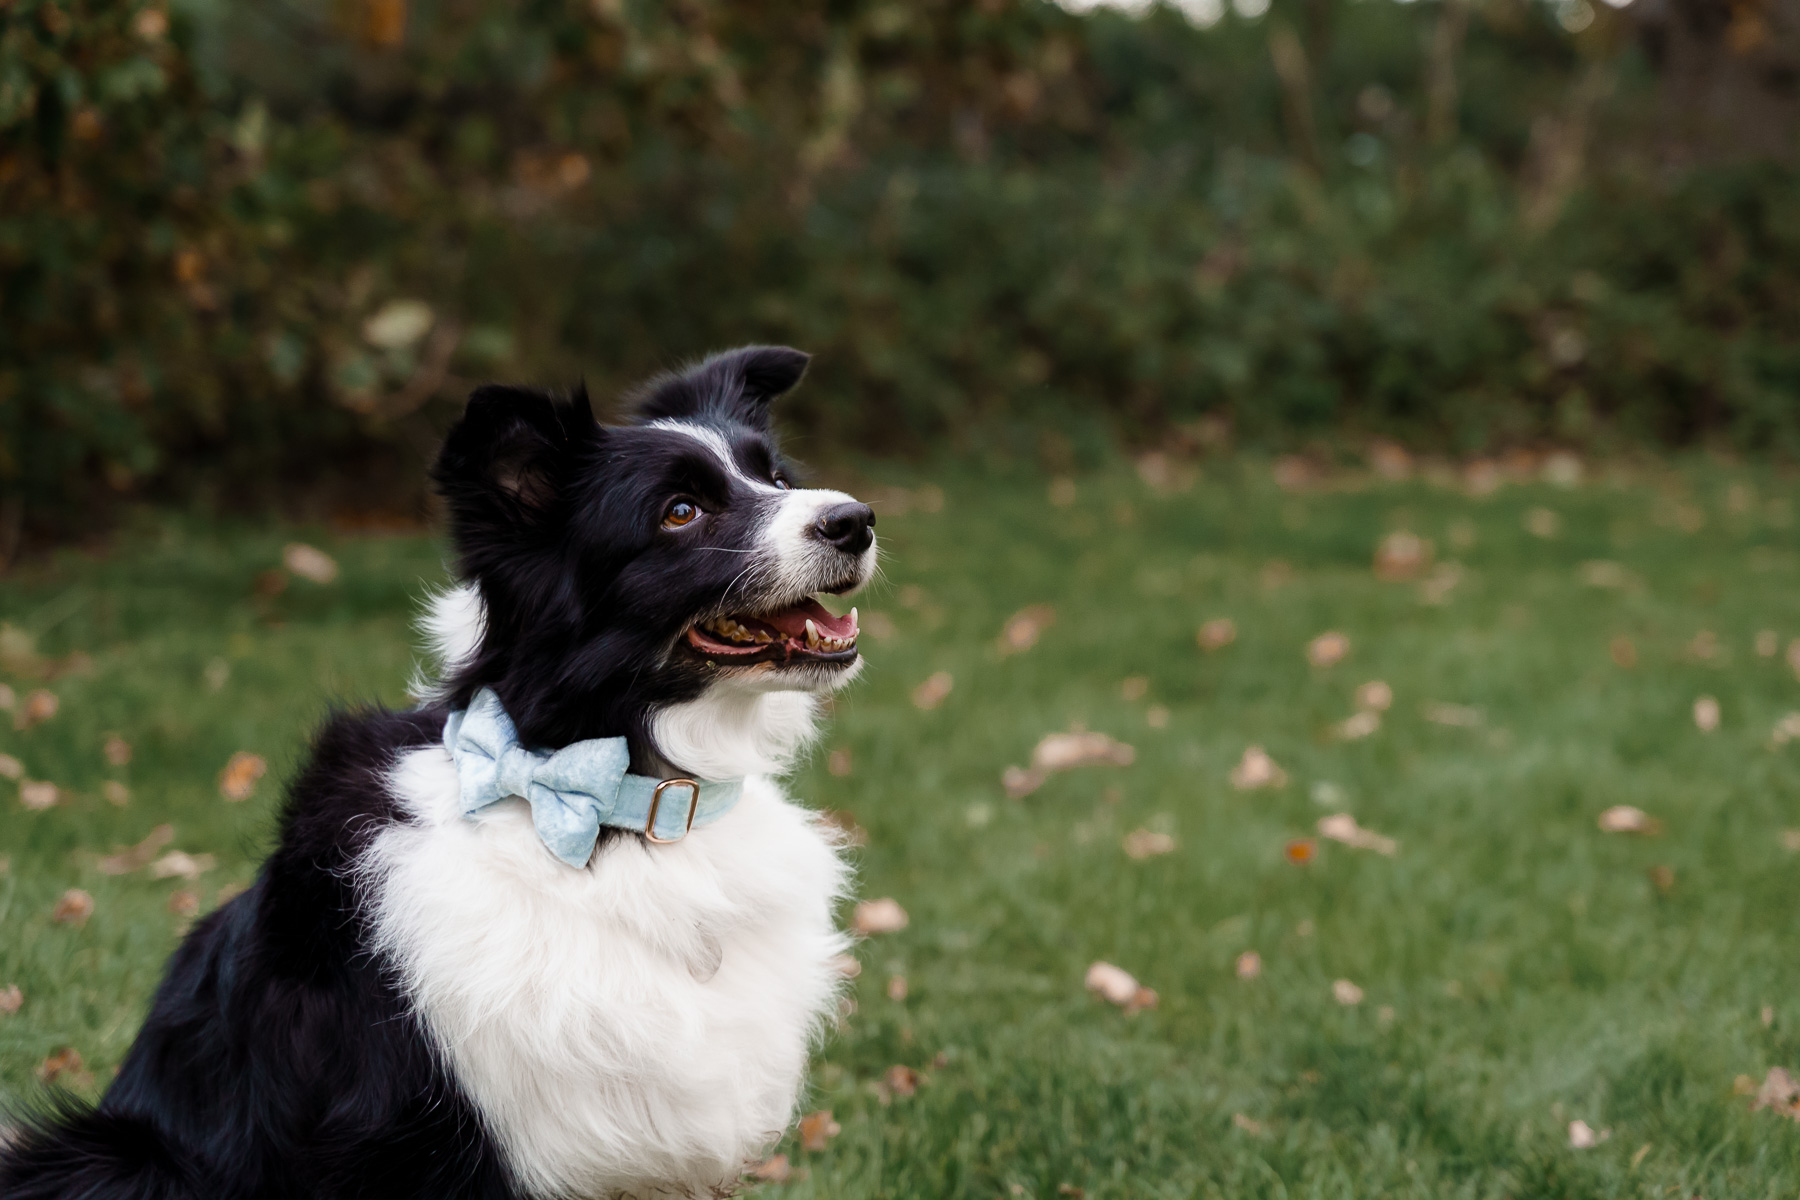 dog friendly wedding- dogs at weddings- katherine and her camera- dog wedding accessories-unconventional wedding- wedding planning advice- pets at weddings- dog bowtie